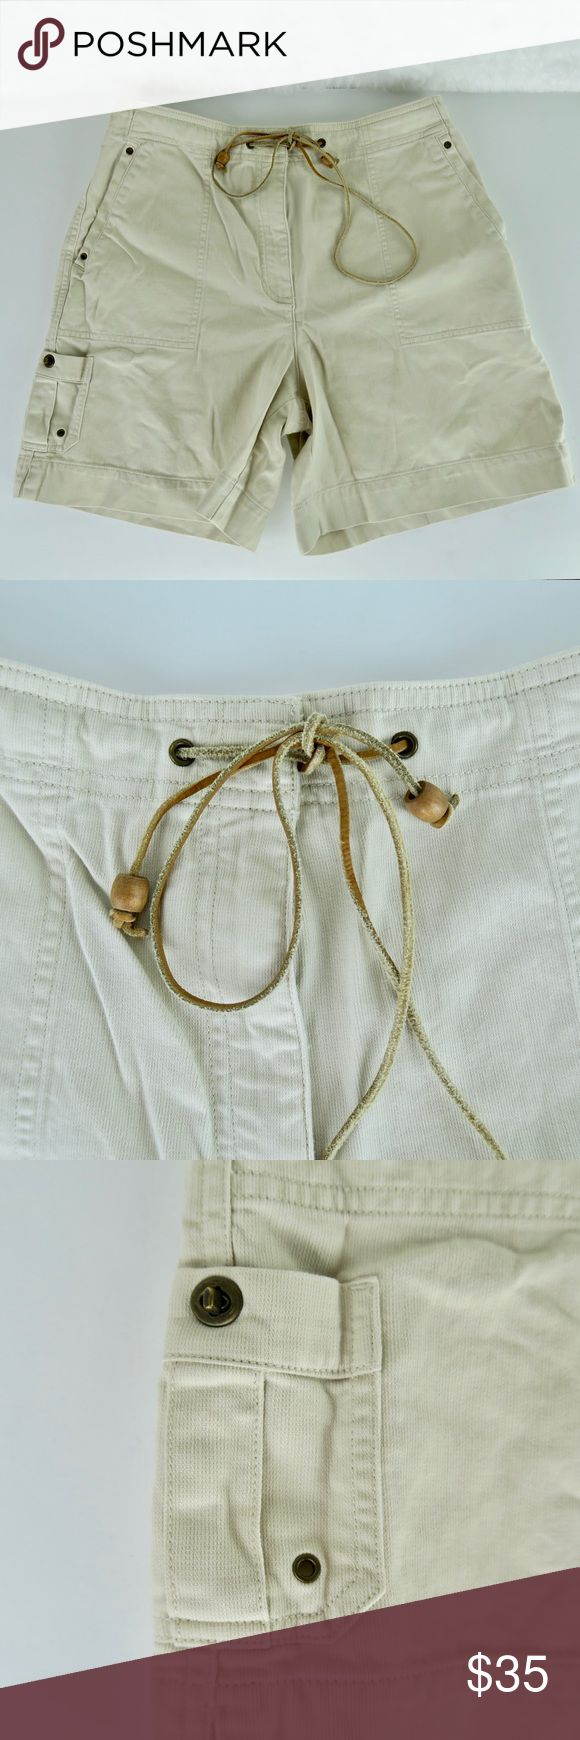 "Lauren Ralph Lauren Walking Bermuda Khaki Shorts Lauren Ralph Lauren Women's Walking Bermuda Khaki Shorts Sz 6P Petite EUC Beige Approximate Measurements Taken Flat Waist laying flat: 14.1/2"" Inseam: 6"" Rise: 11""  Please see measurements and compare to your own garment to ensure proper fit as sizing can vary between brands and lines within a brand.  Gently used with no flaws. Please see photos for exact details. Lauren Ralph Lauren Shorts Bermudas"